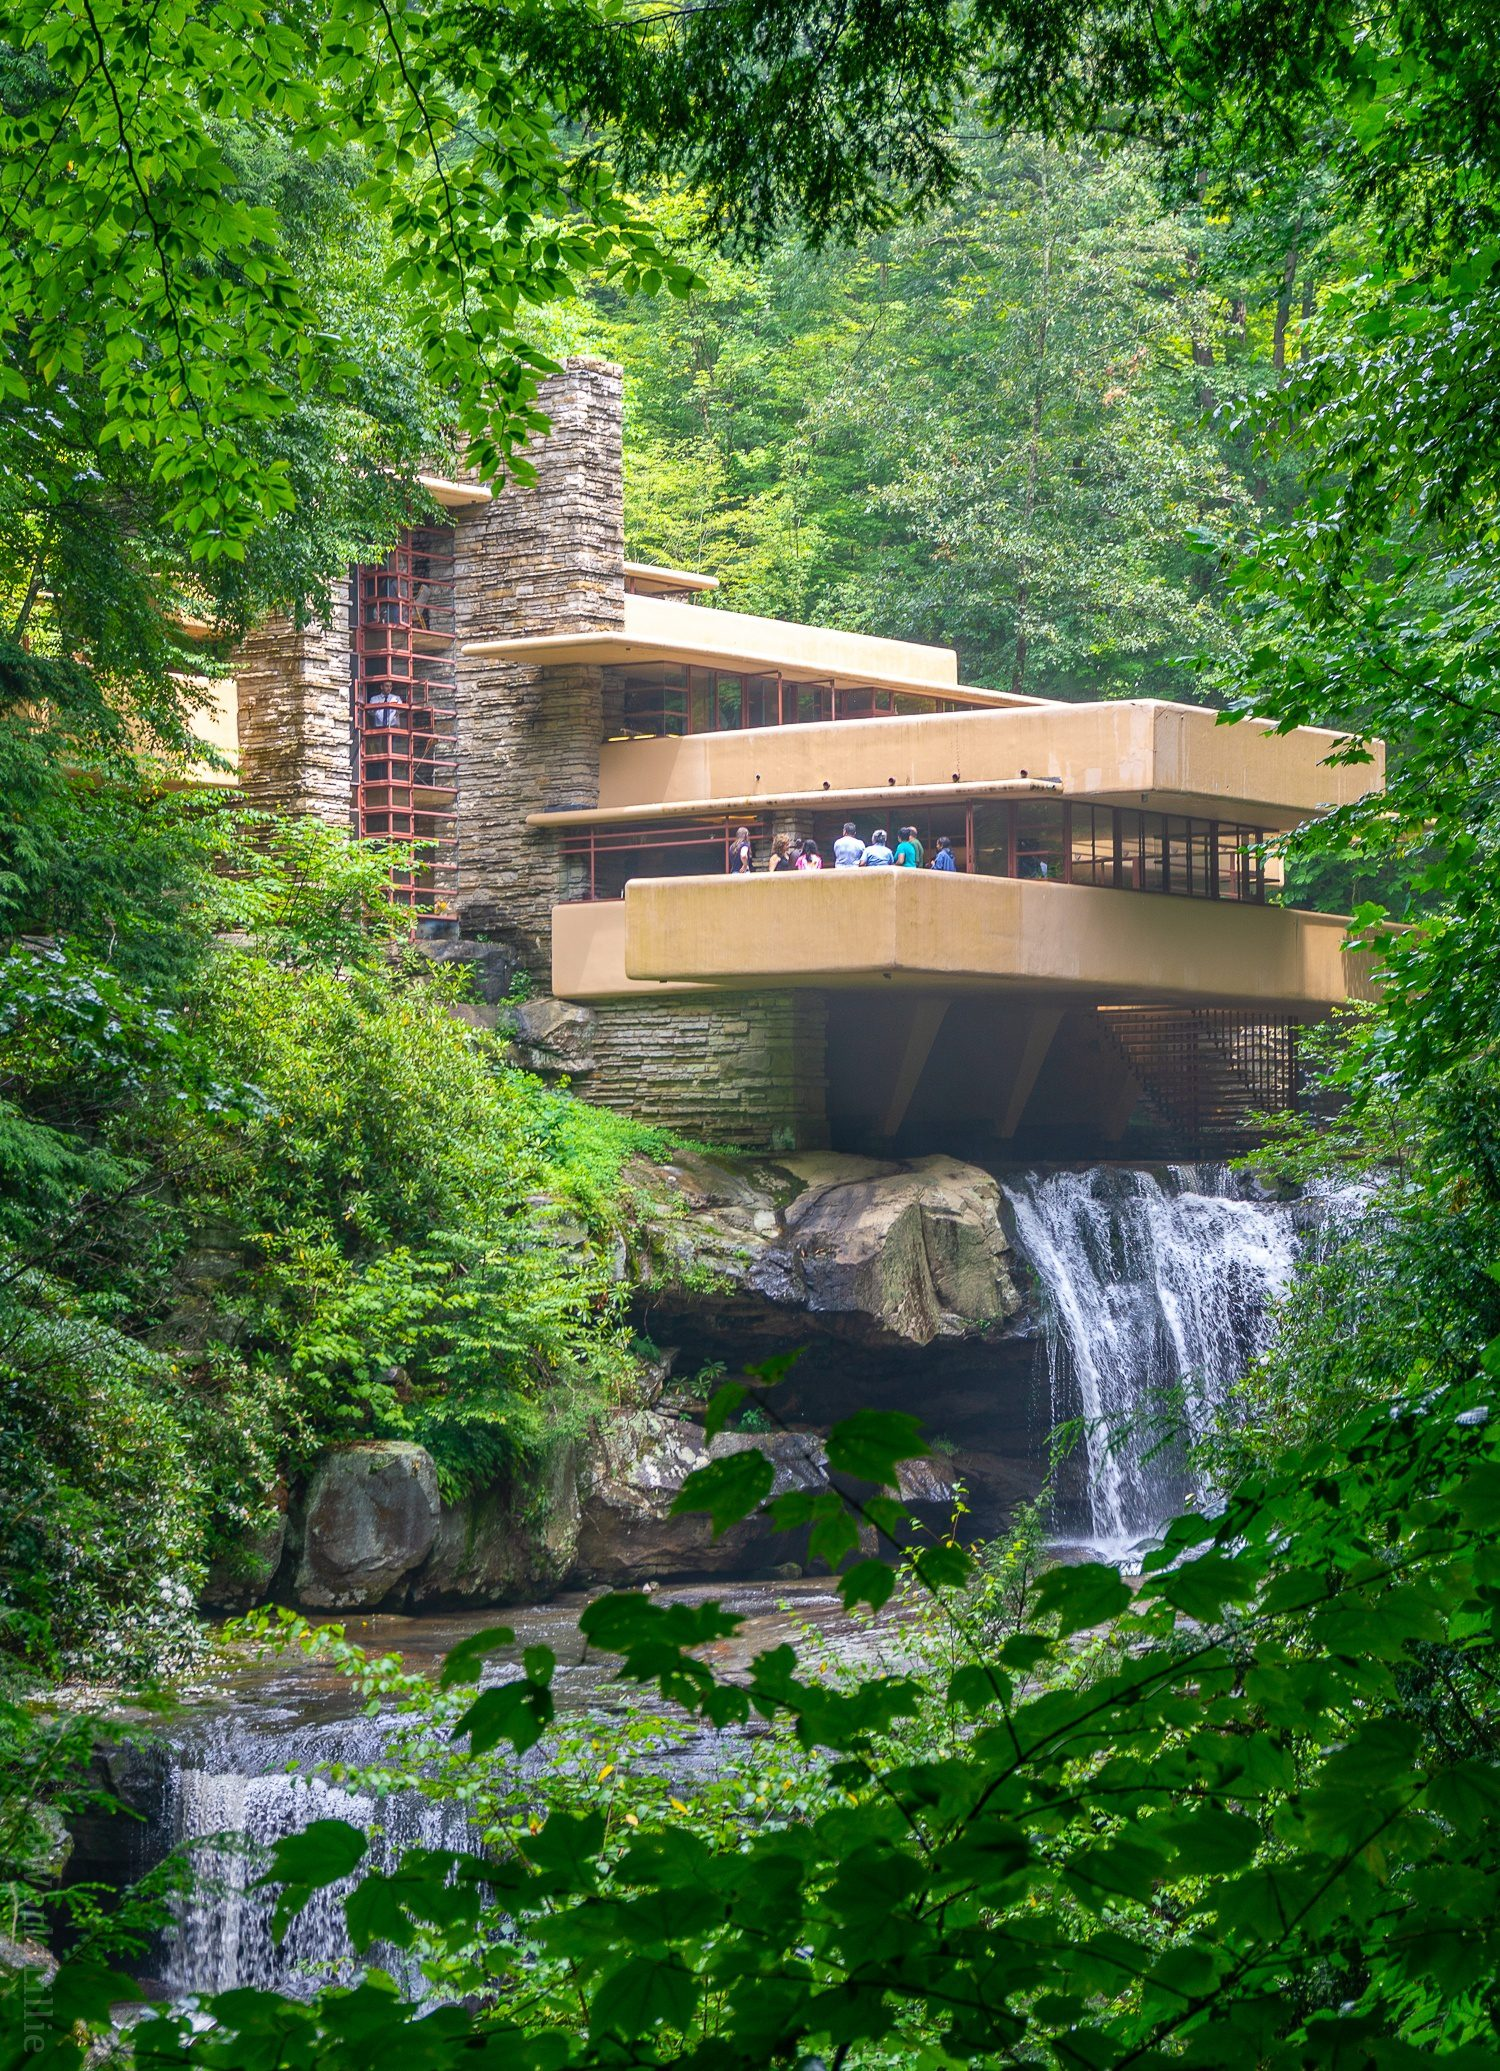 """Frank Lloyd Wright's Fallingwater, famous house for architecture, is a great attraction near Pittsburgh, PA in the Laurel Highlands, even in """"falling water""""!"""